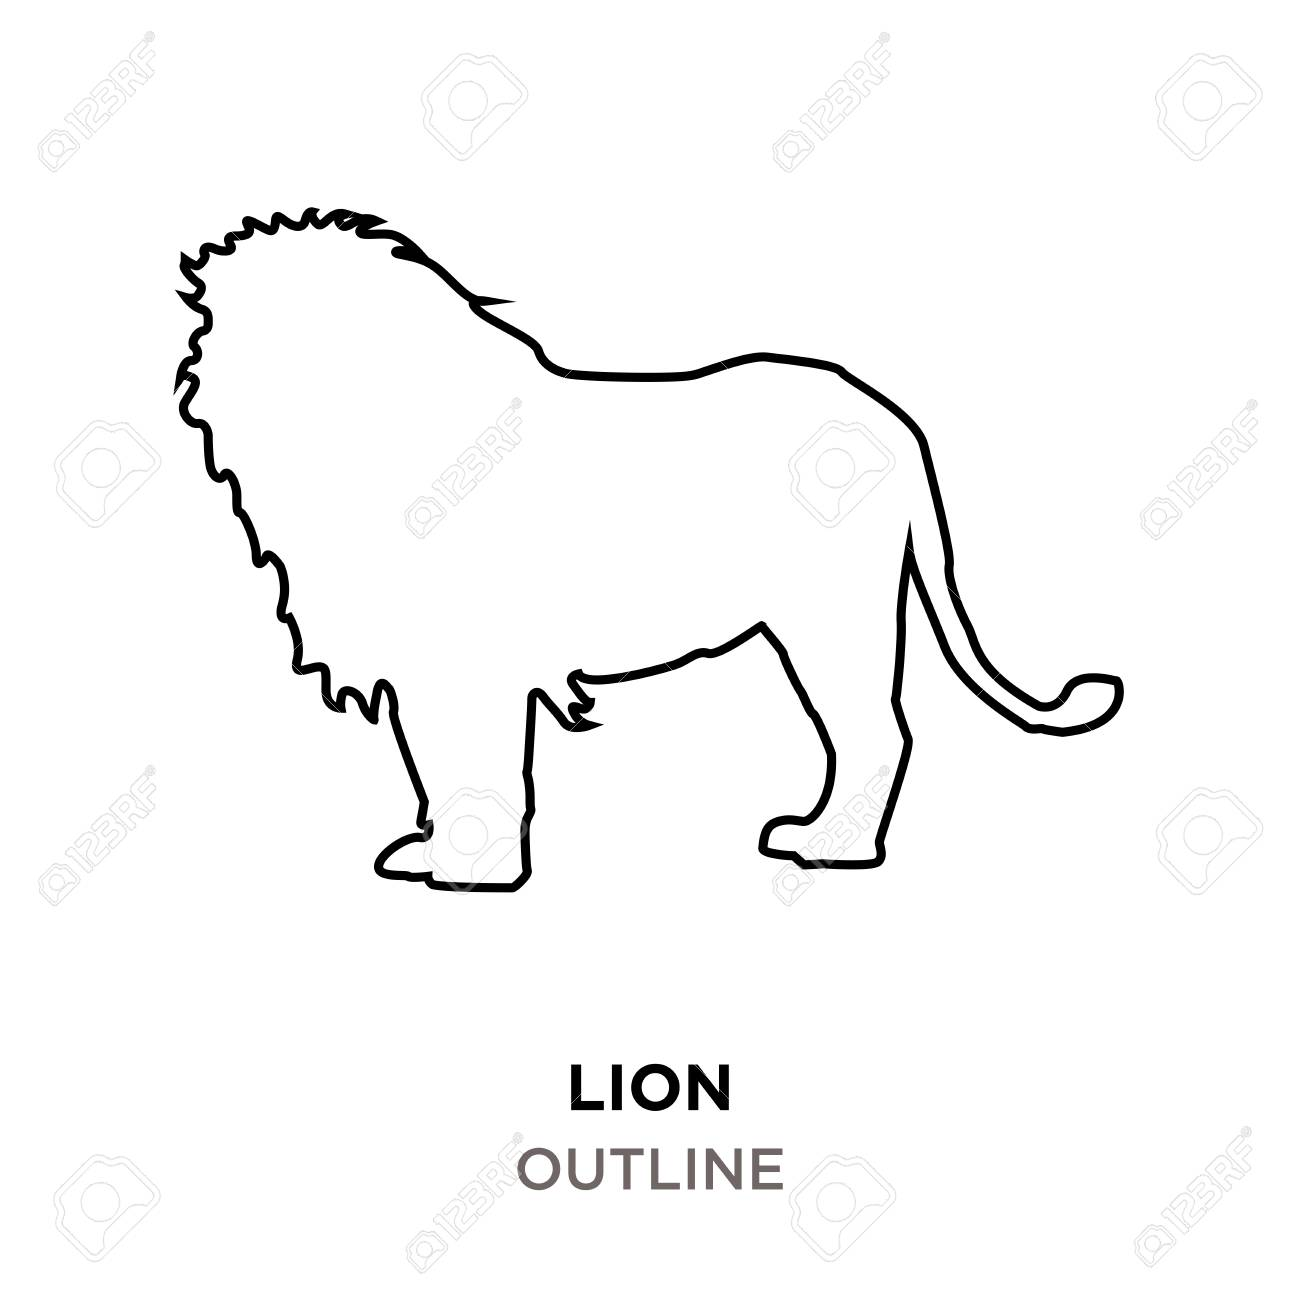 Lion Outline Images On White Background Royalty Free Cliparts Vectors And Stock Illustration Image 98898970 You have come to the right place! lion outline images on white background